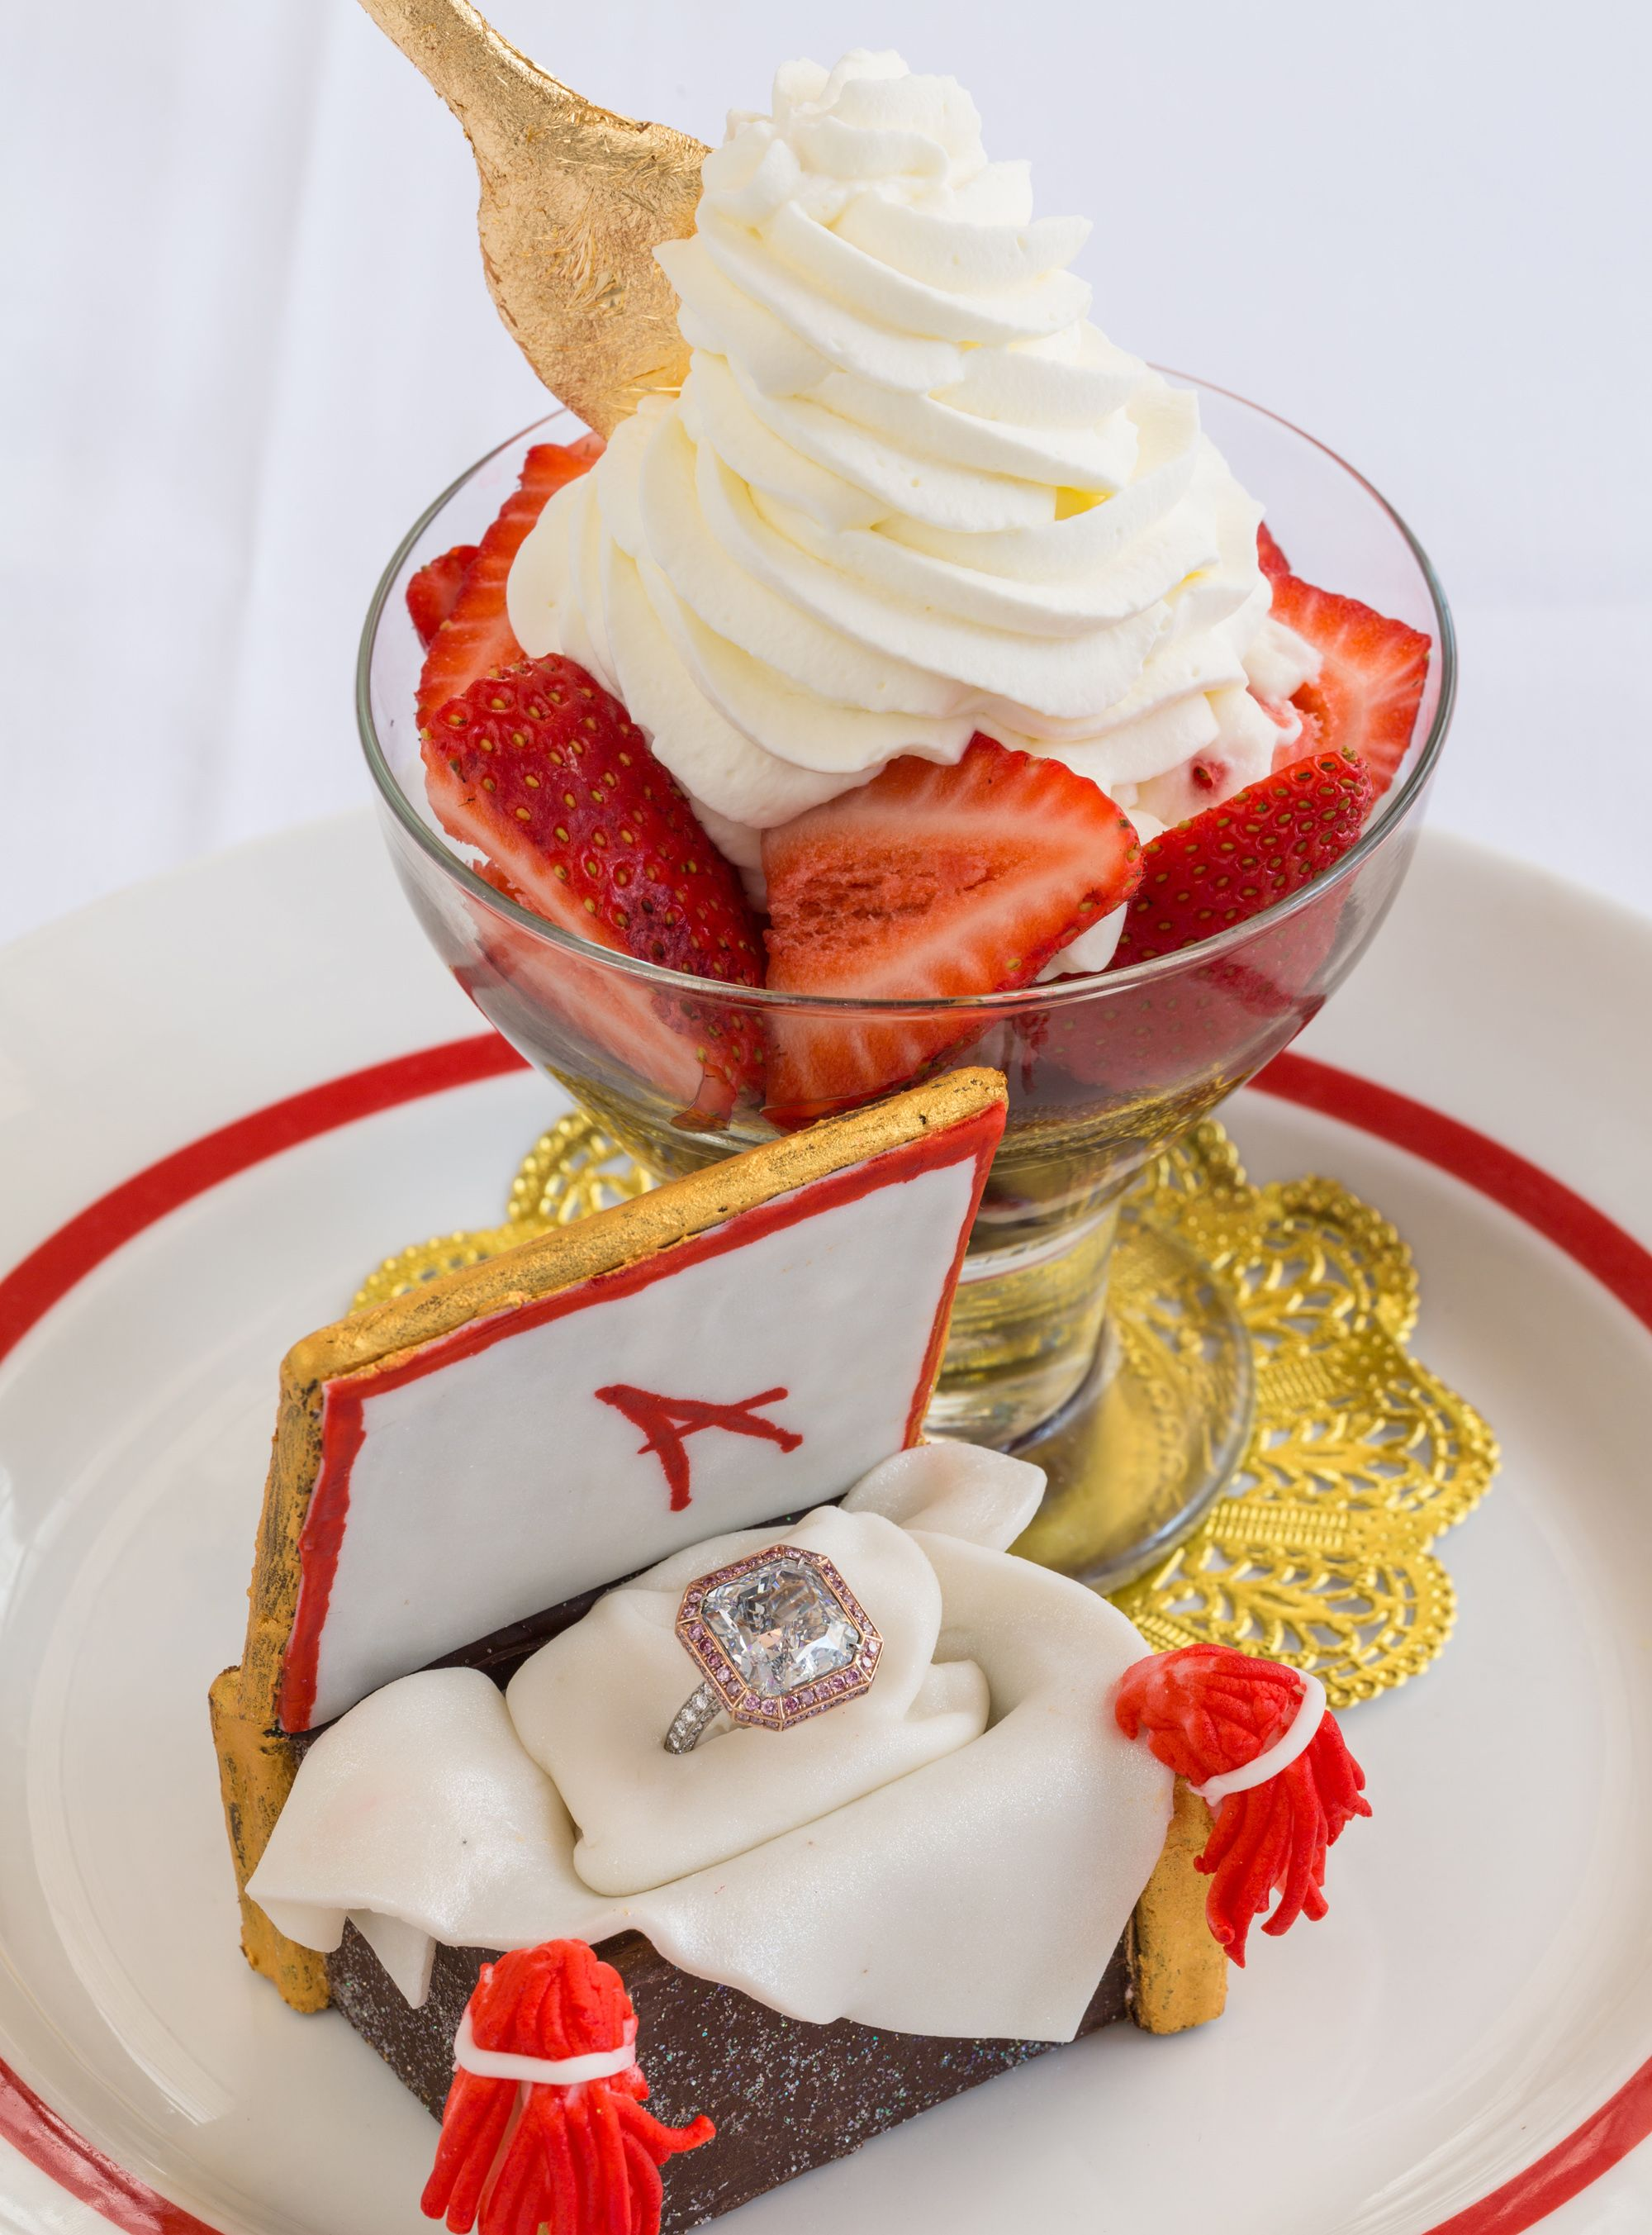 Recreate This Decadent 98M Strawberry Dessert From NOLA